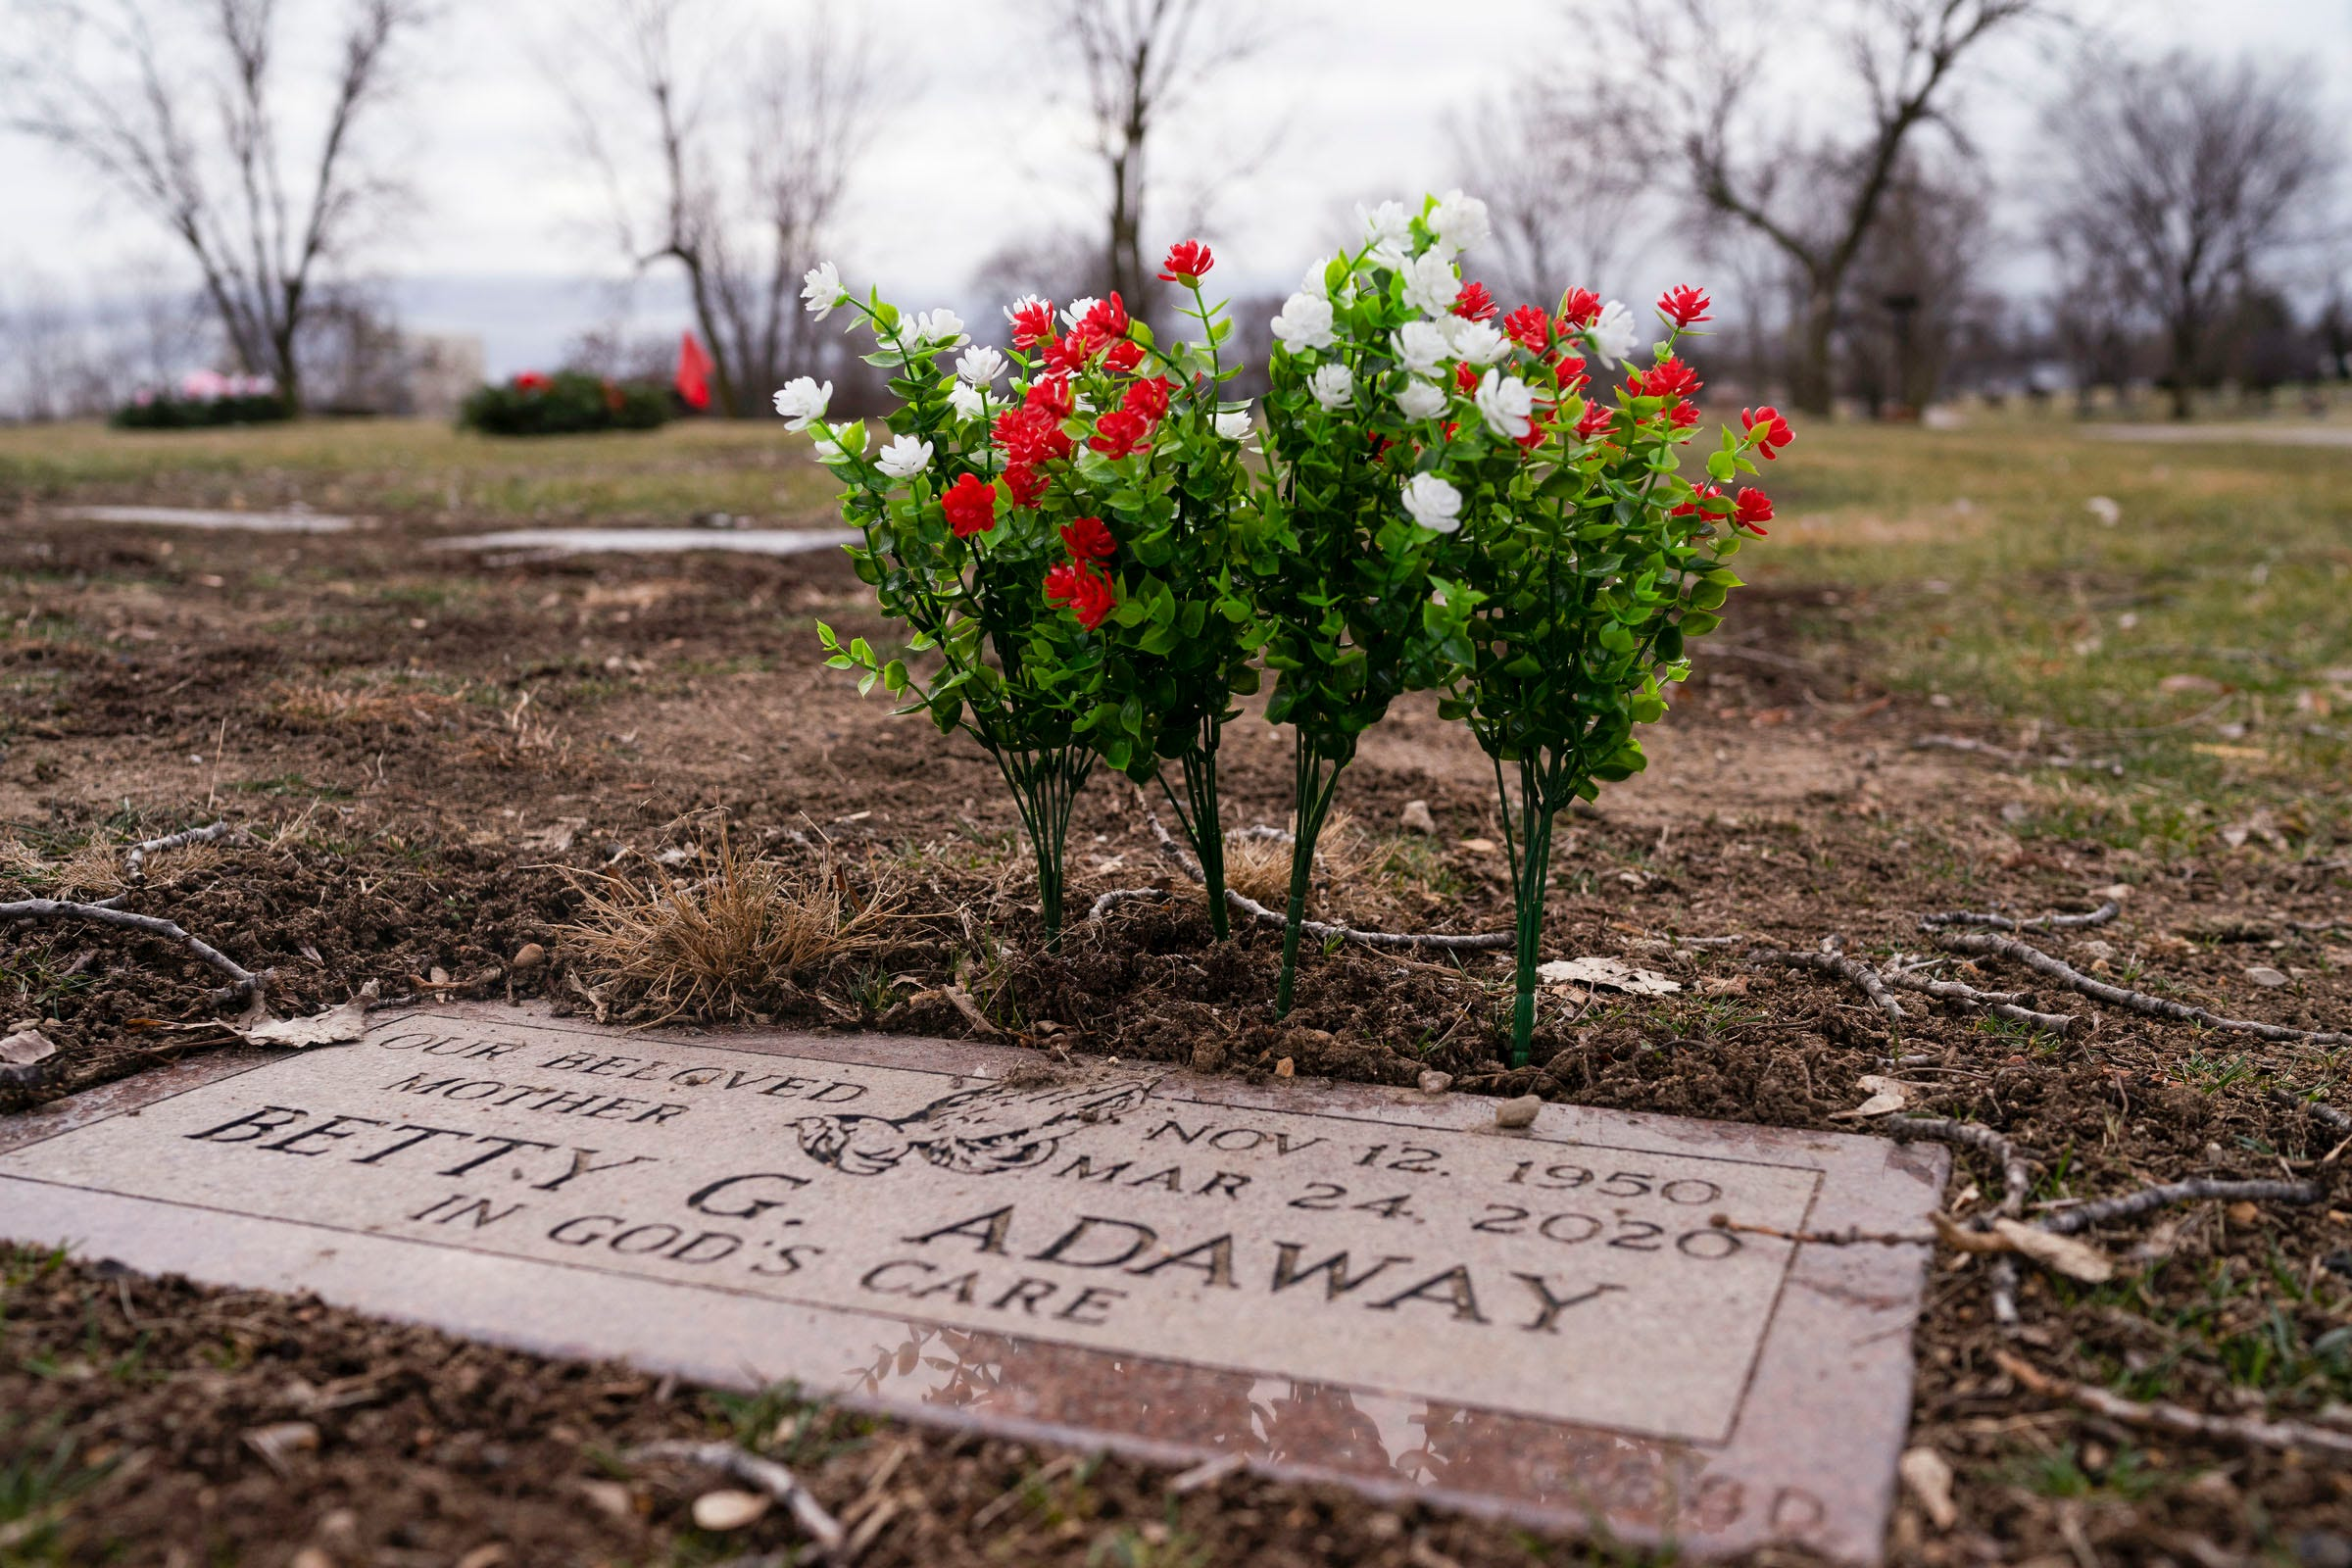 Fresh flowers are placed at Betty Gene Adaway's grave marker at the Detroit Memorial Park on Sunday, Dec. 6, 2020, in Redford Township.